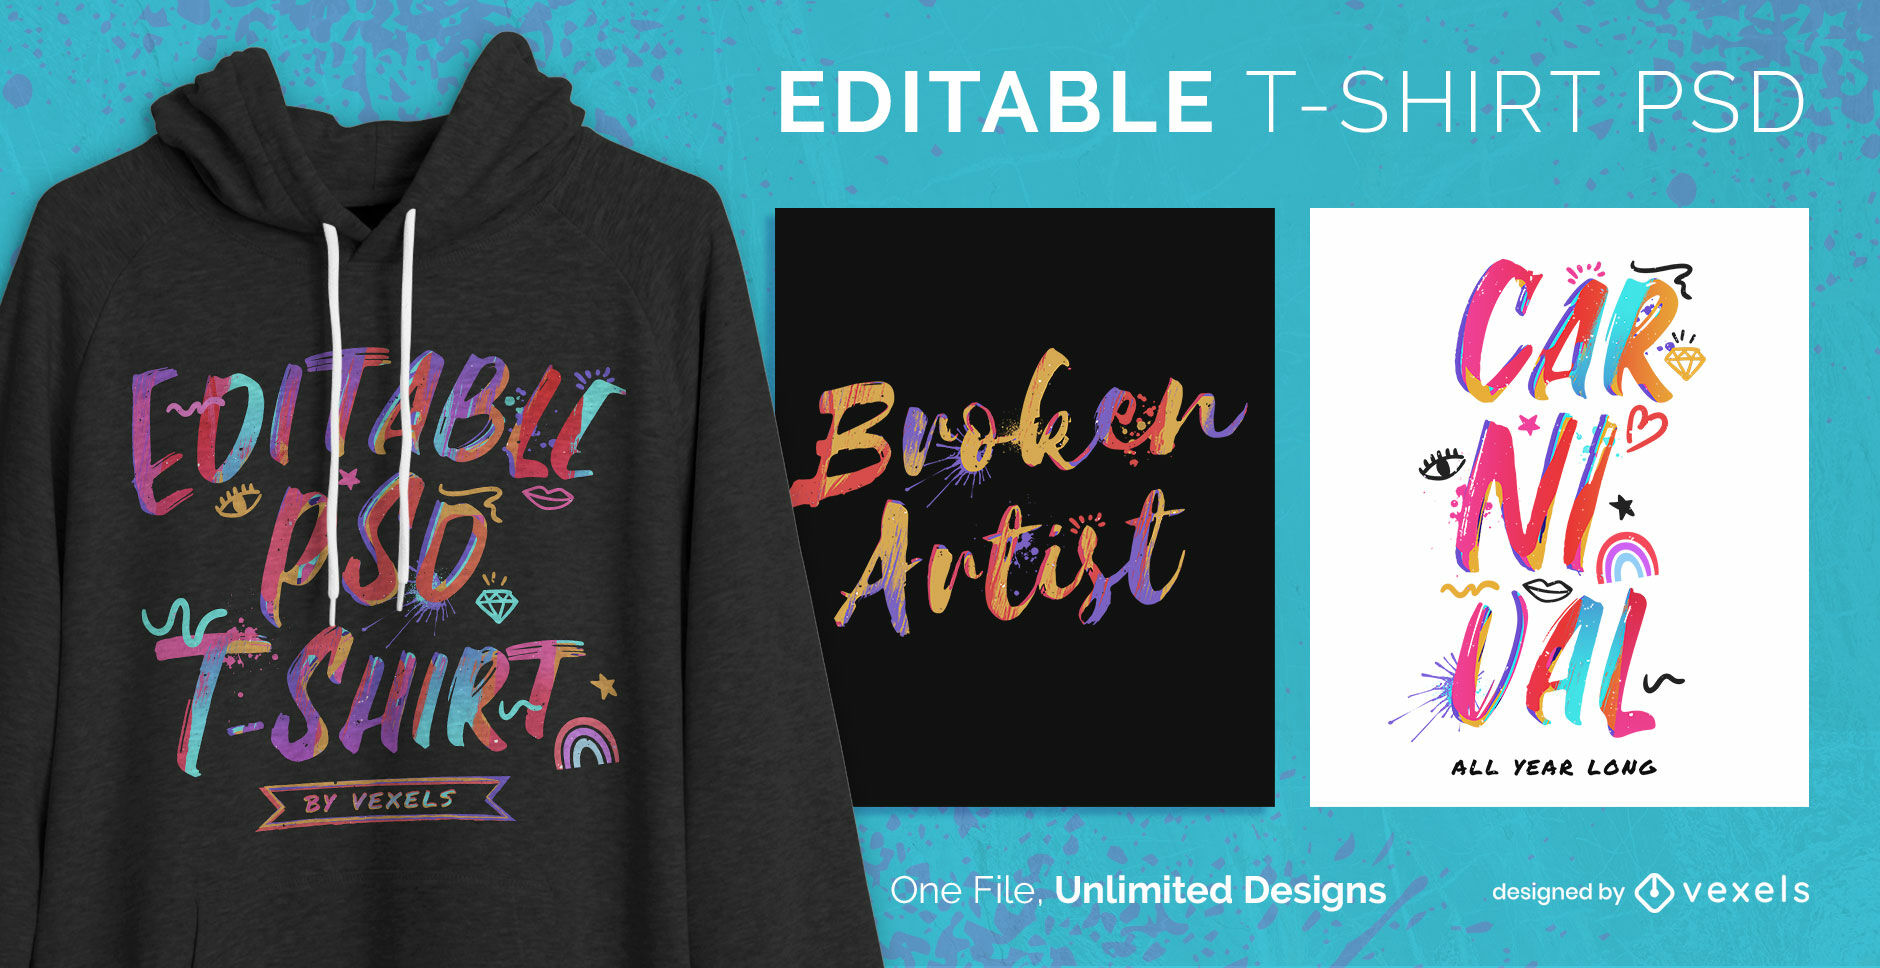 Watercolor lettering text editable t-shirt psd